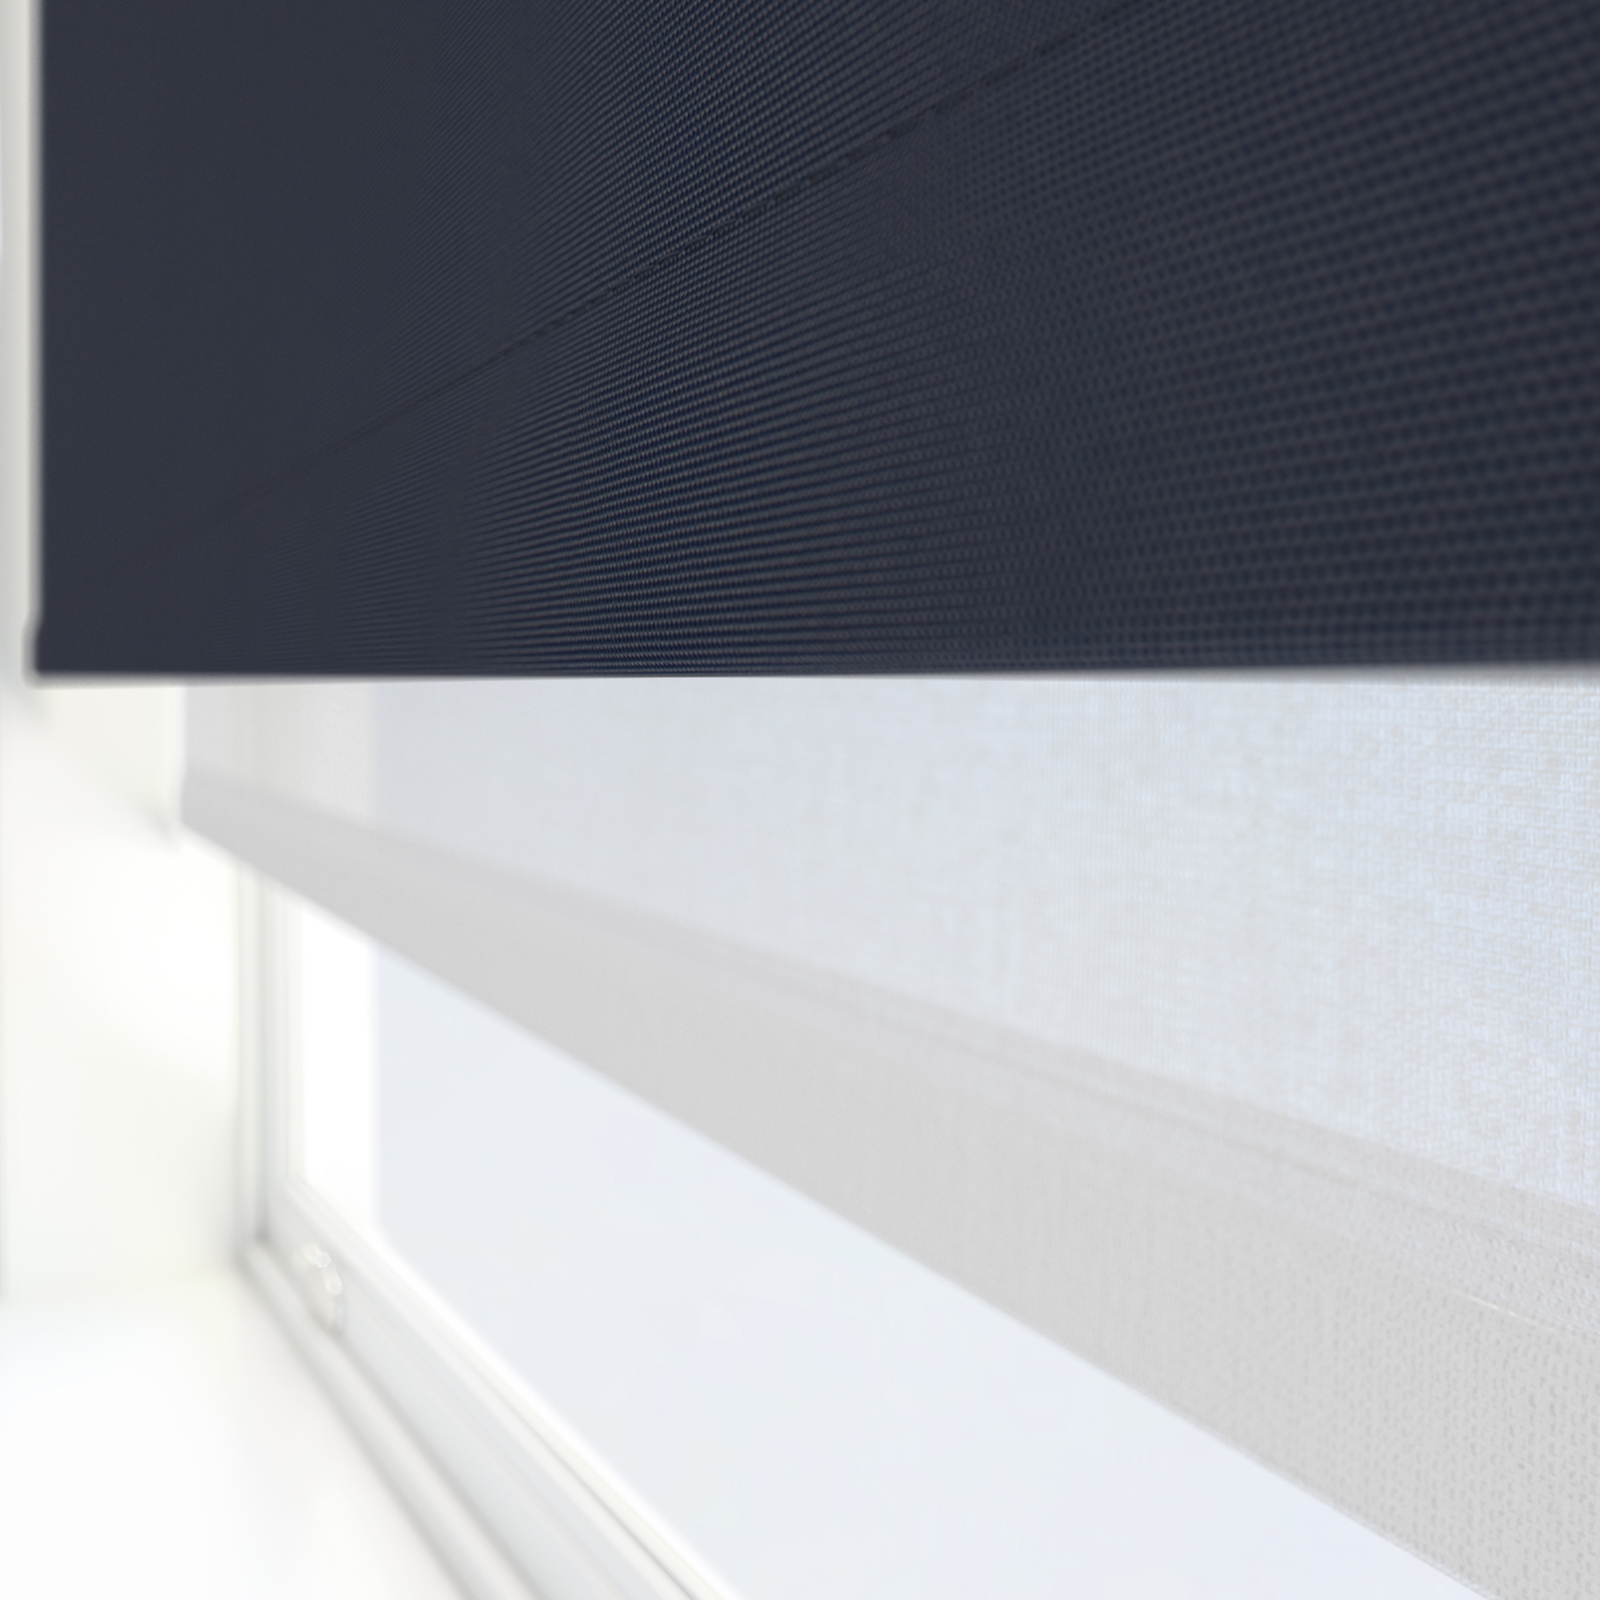 Navy and white double roller blind from Blinds Direct.